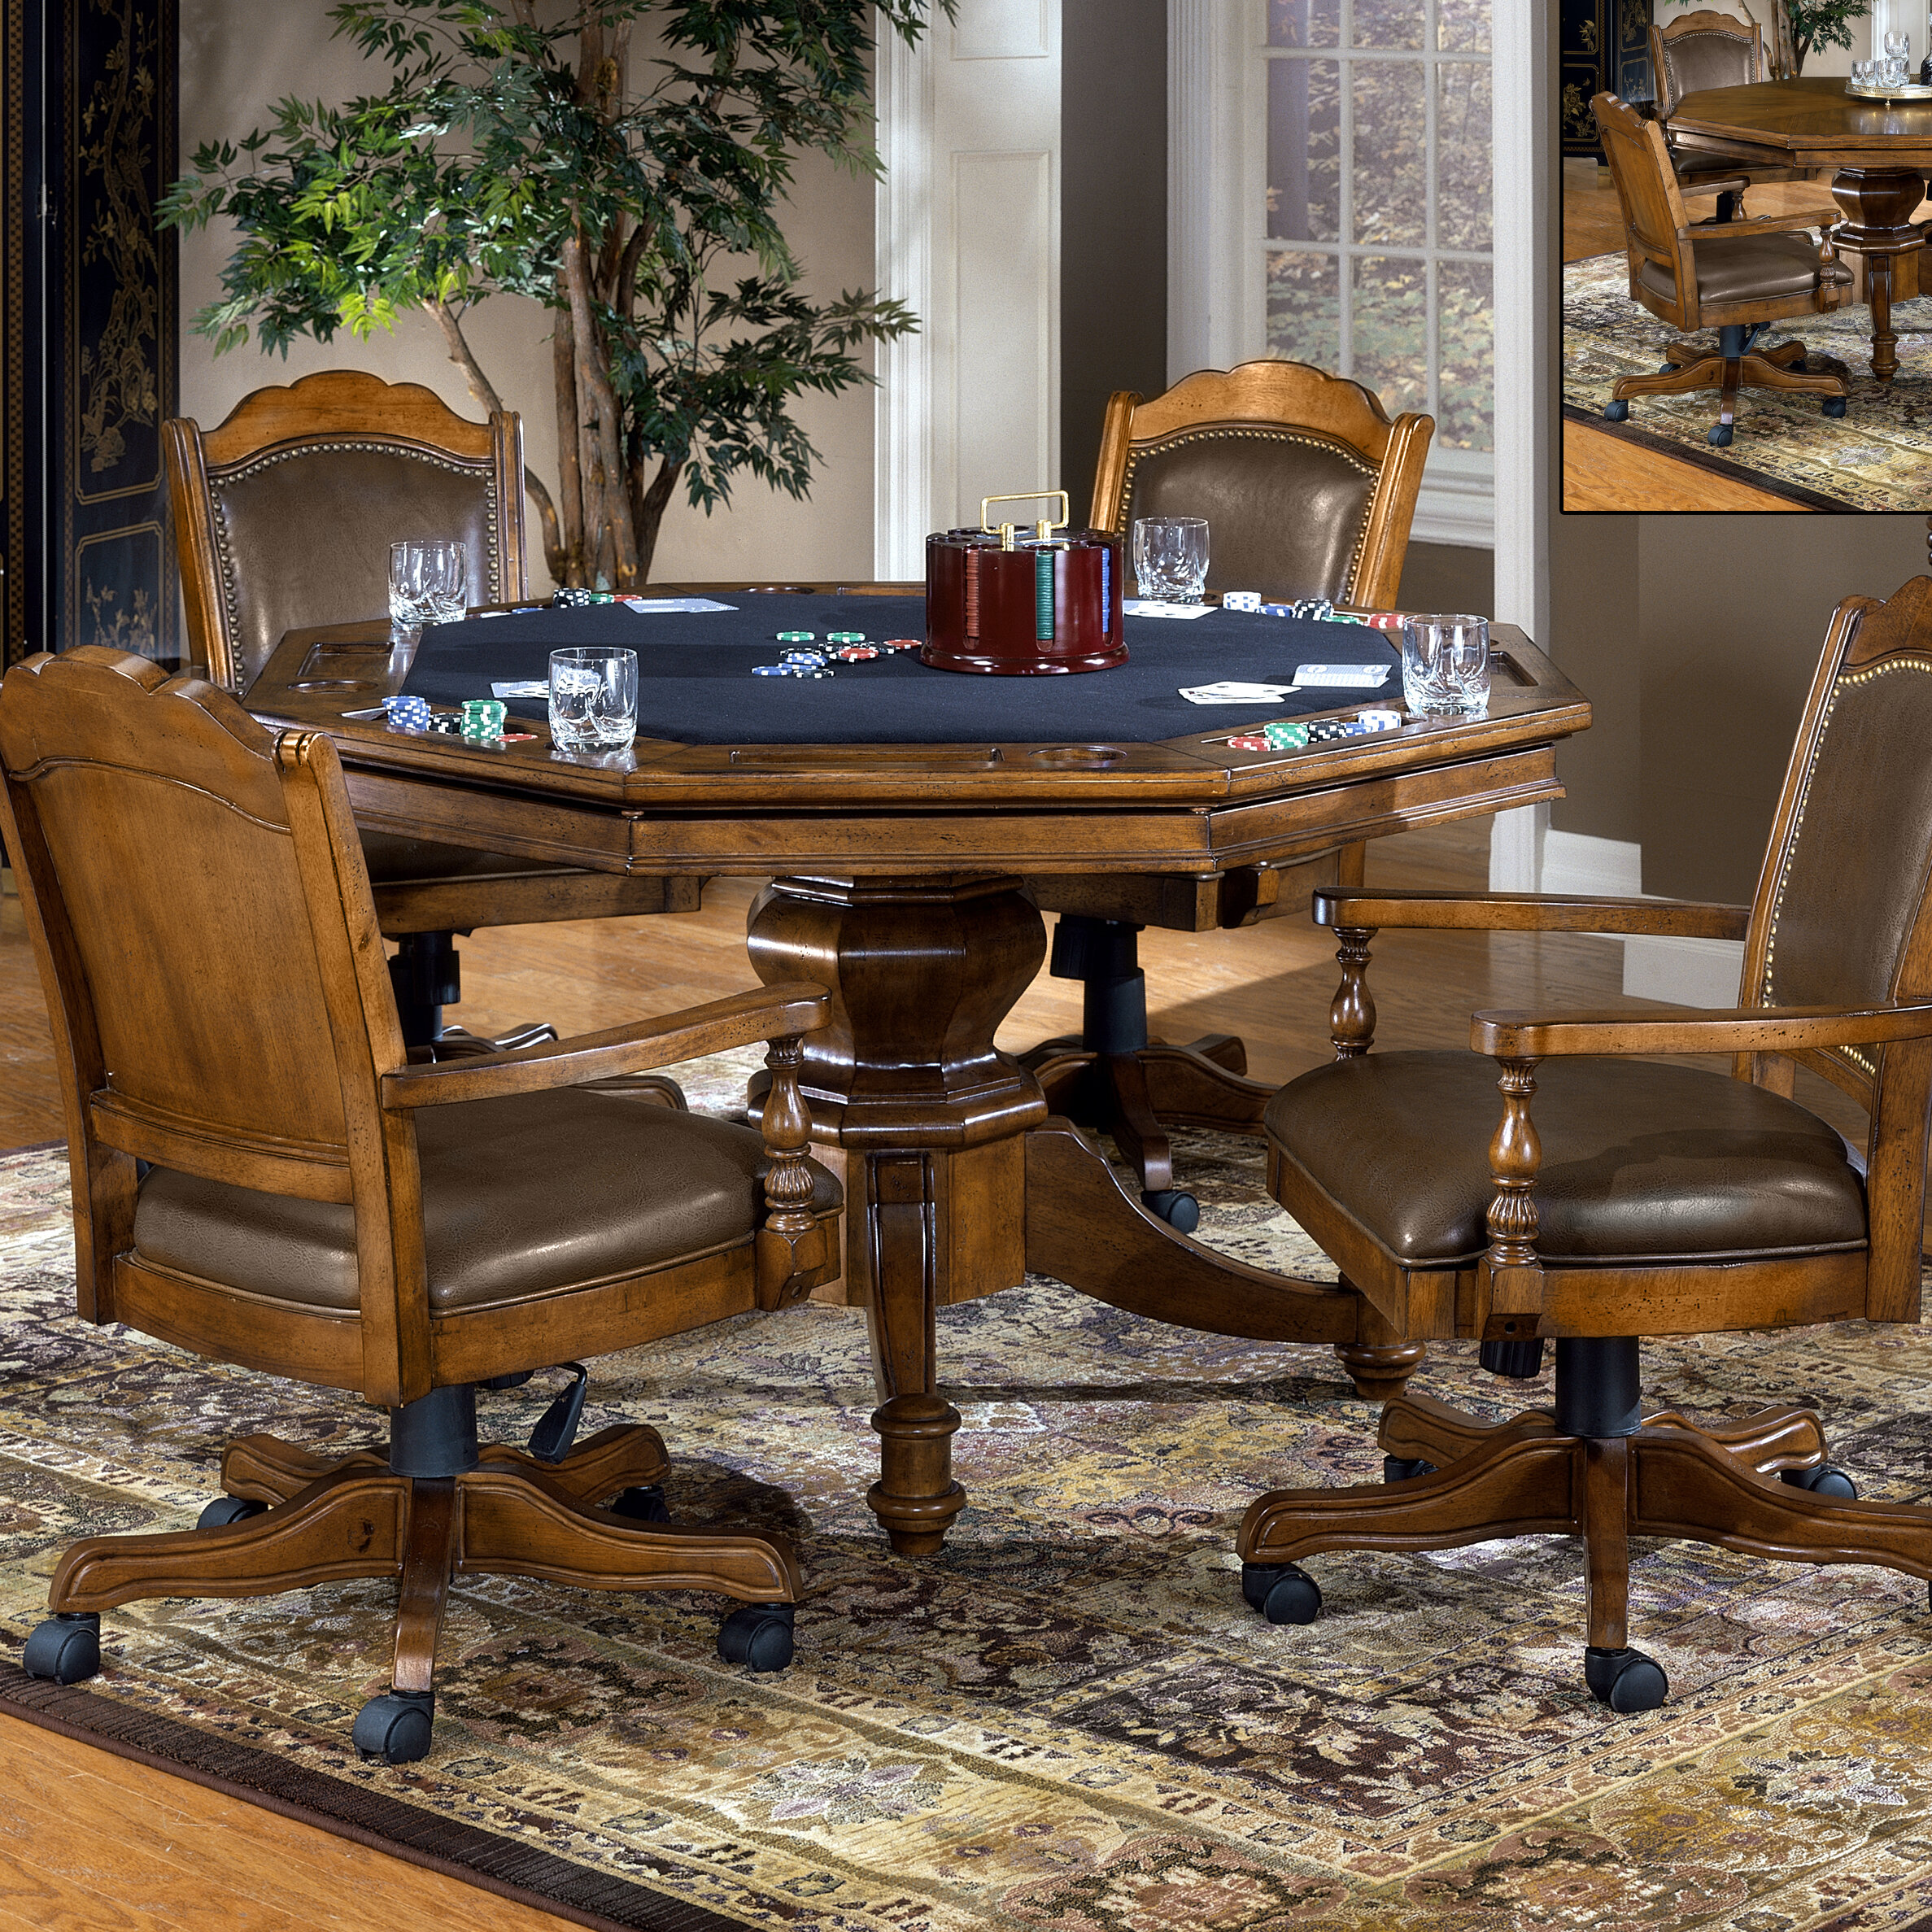 Darby home co earles 52 poker table reviews wayfair for Table 52 opentable